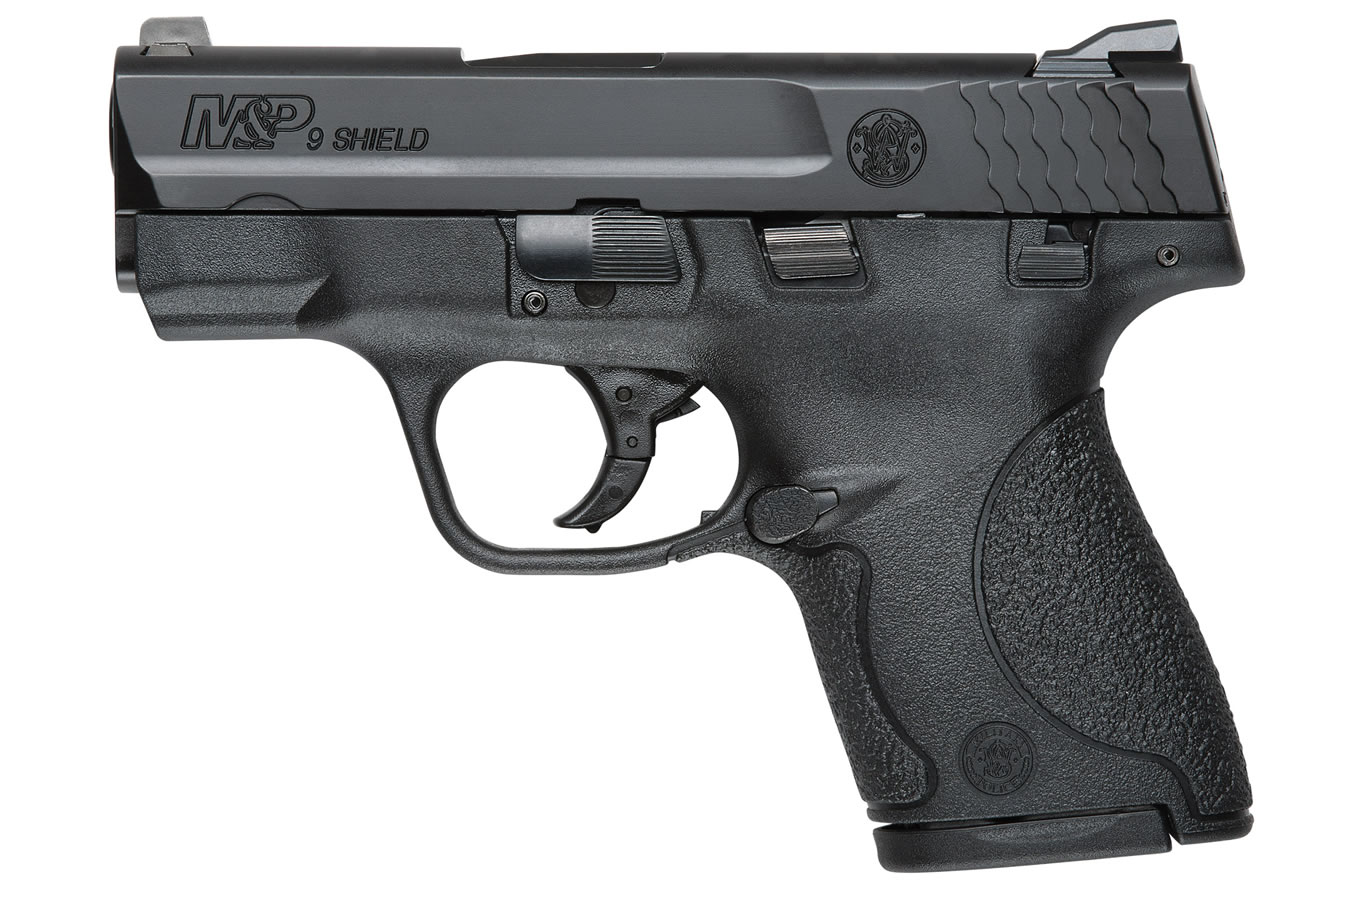 No. 2 Best Selling: SMITH AND WESSON MP9 SHIELD 9MM PISTOL